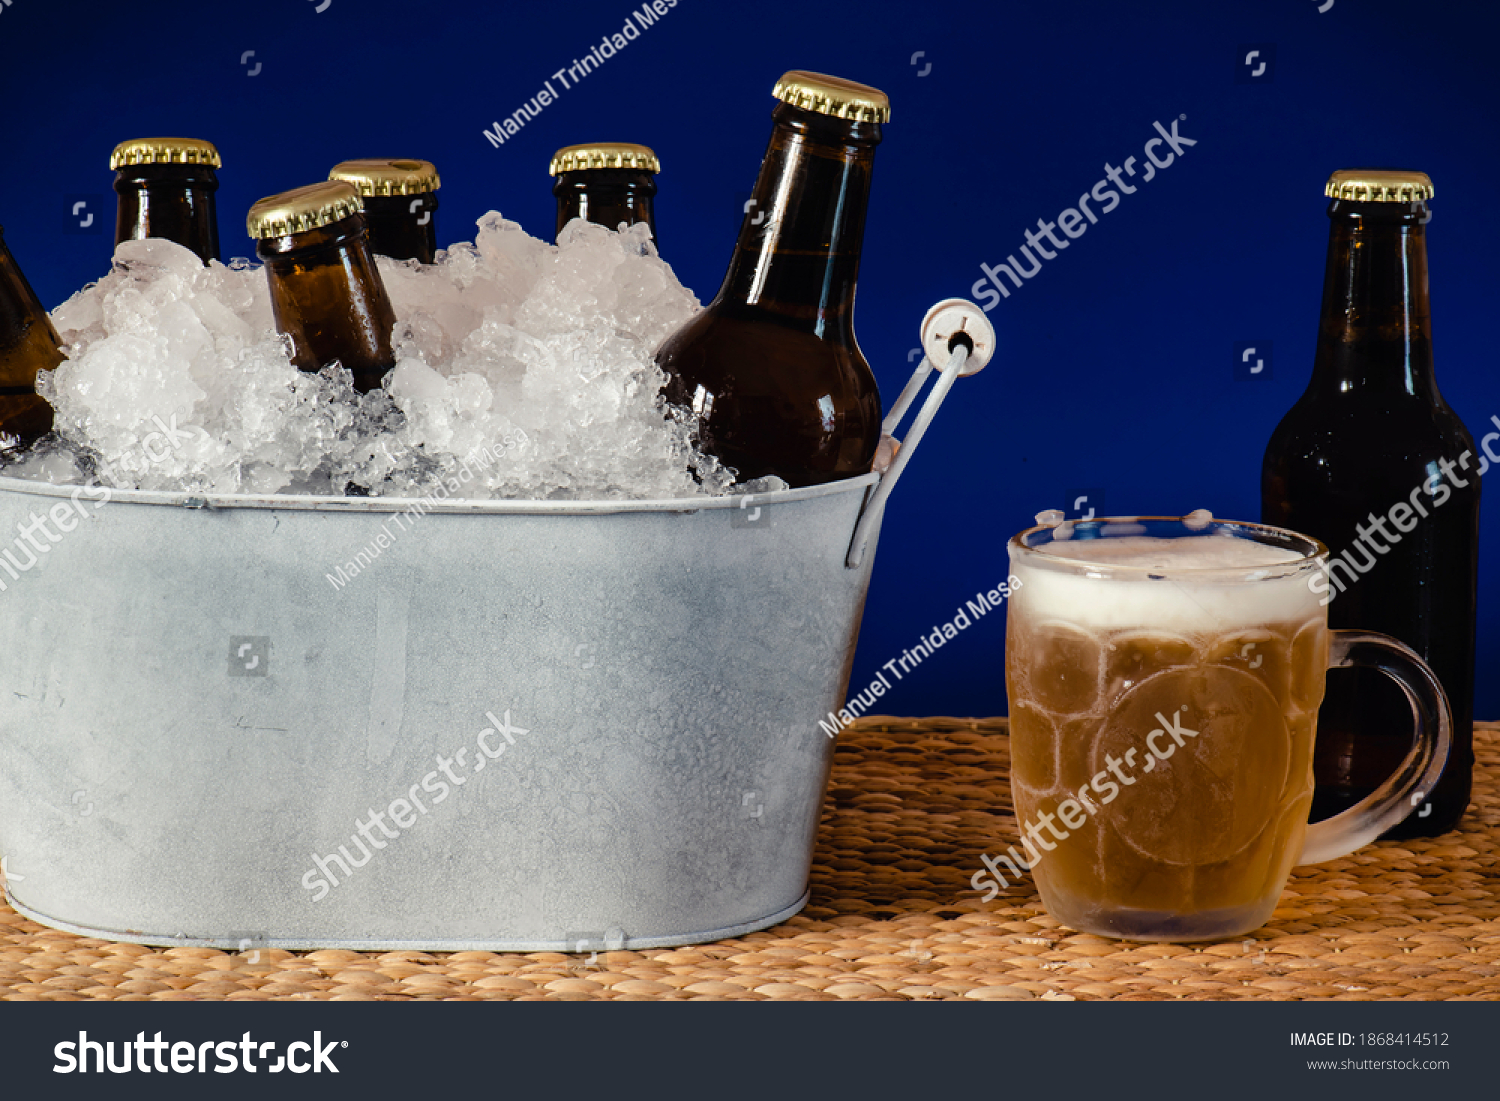 stock-photo-bottles-of-cold-beer-in-a-zi